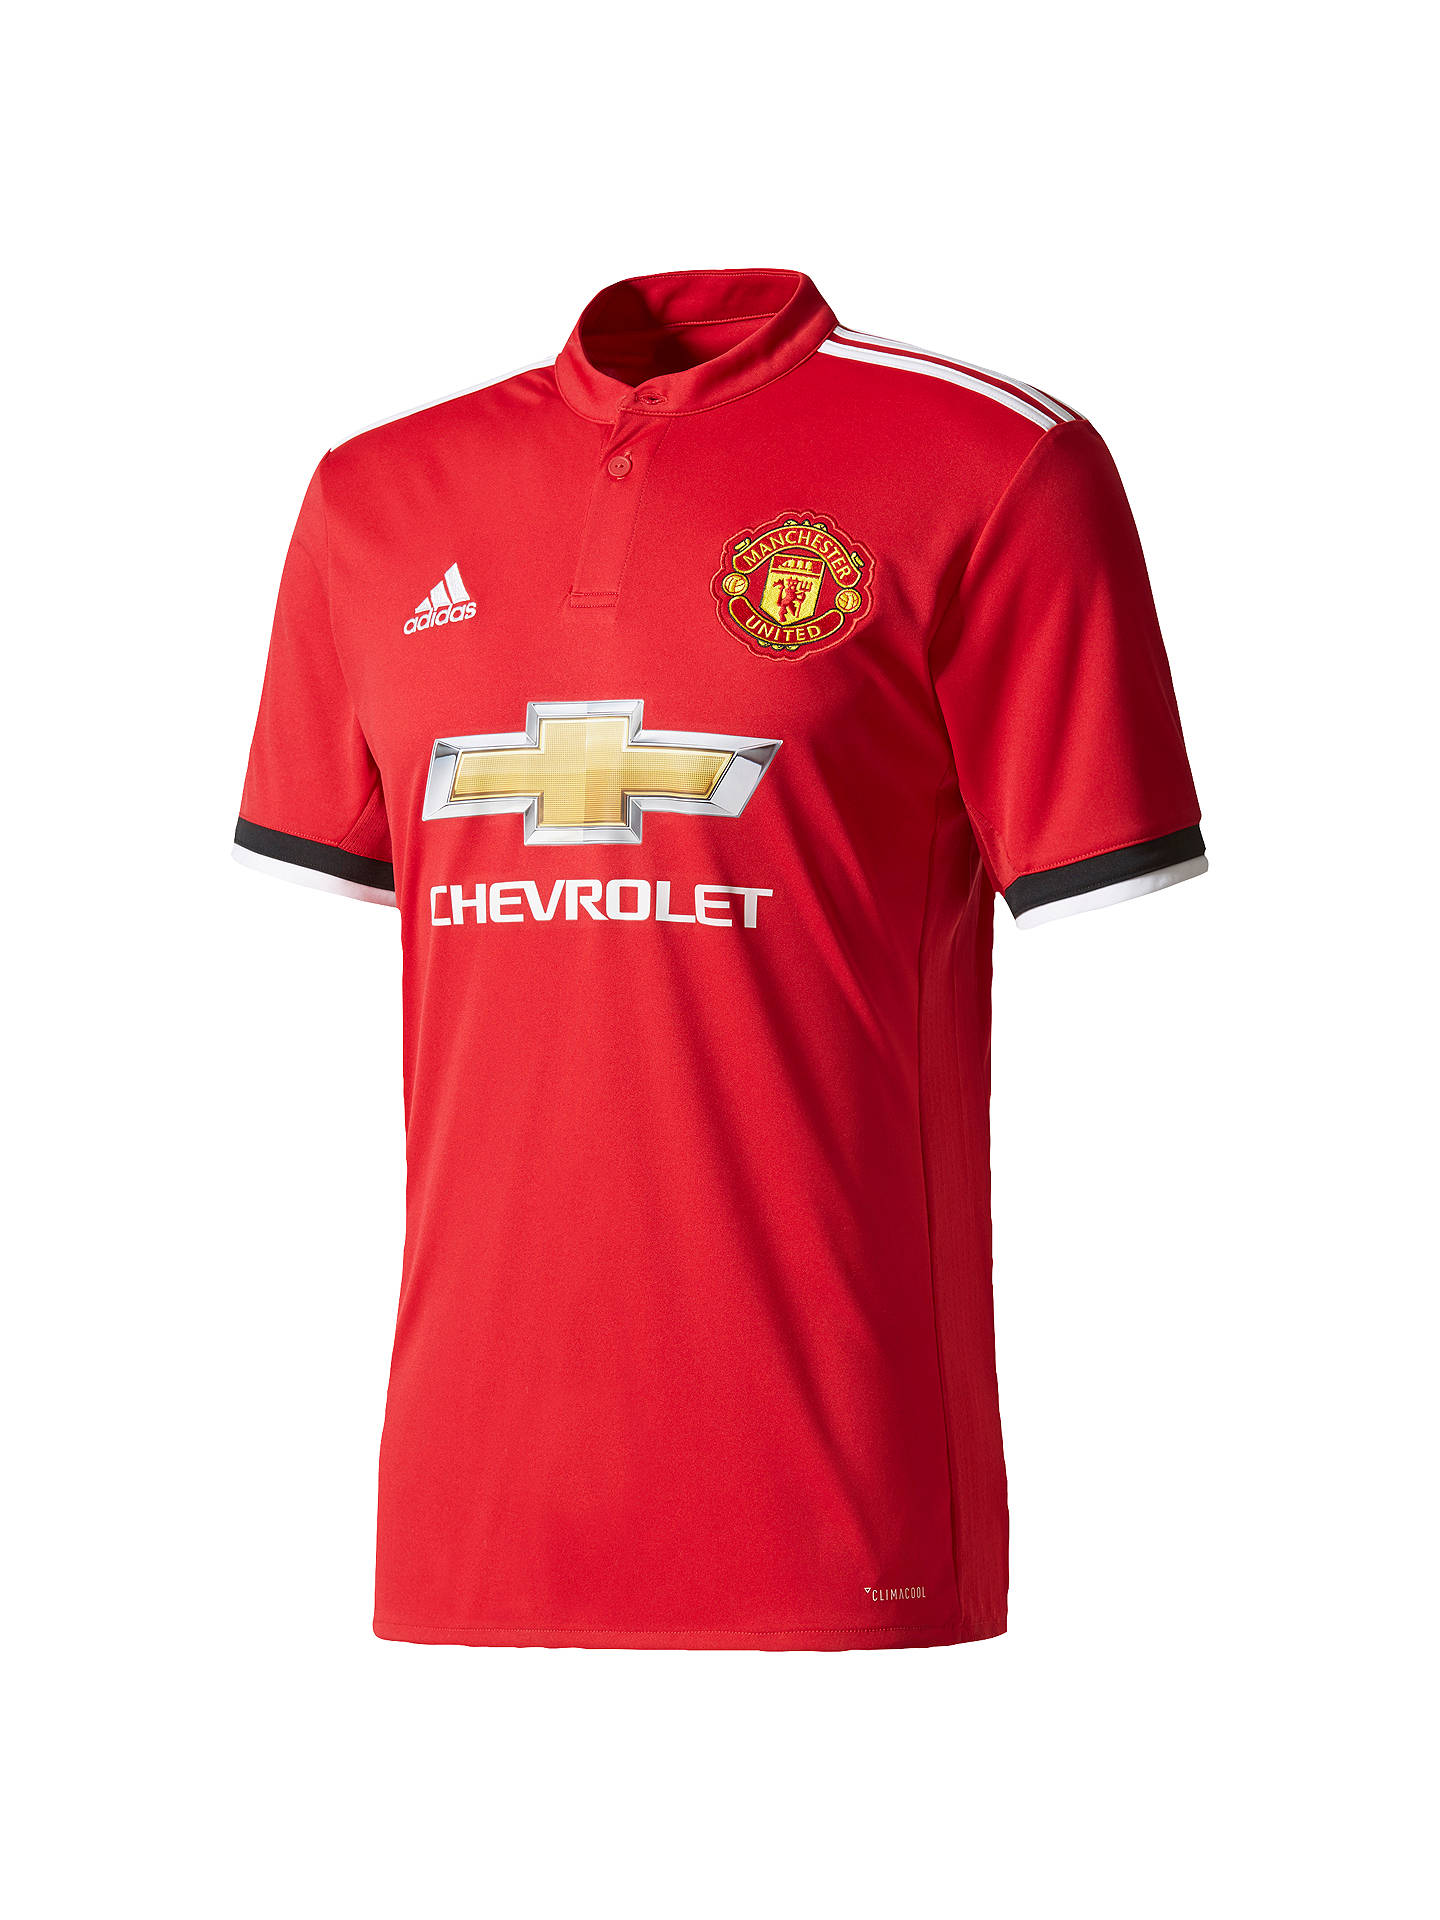 37bb88201 Buyadidas Manchester United F.C. Home Replica Football Shirt